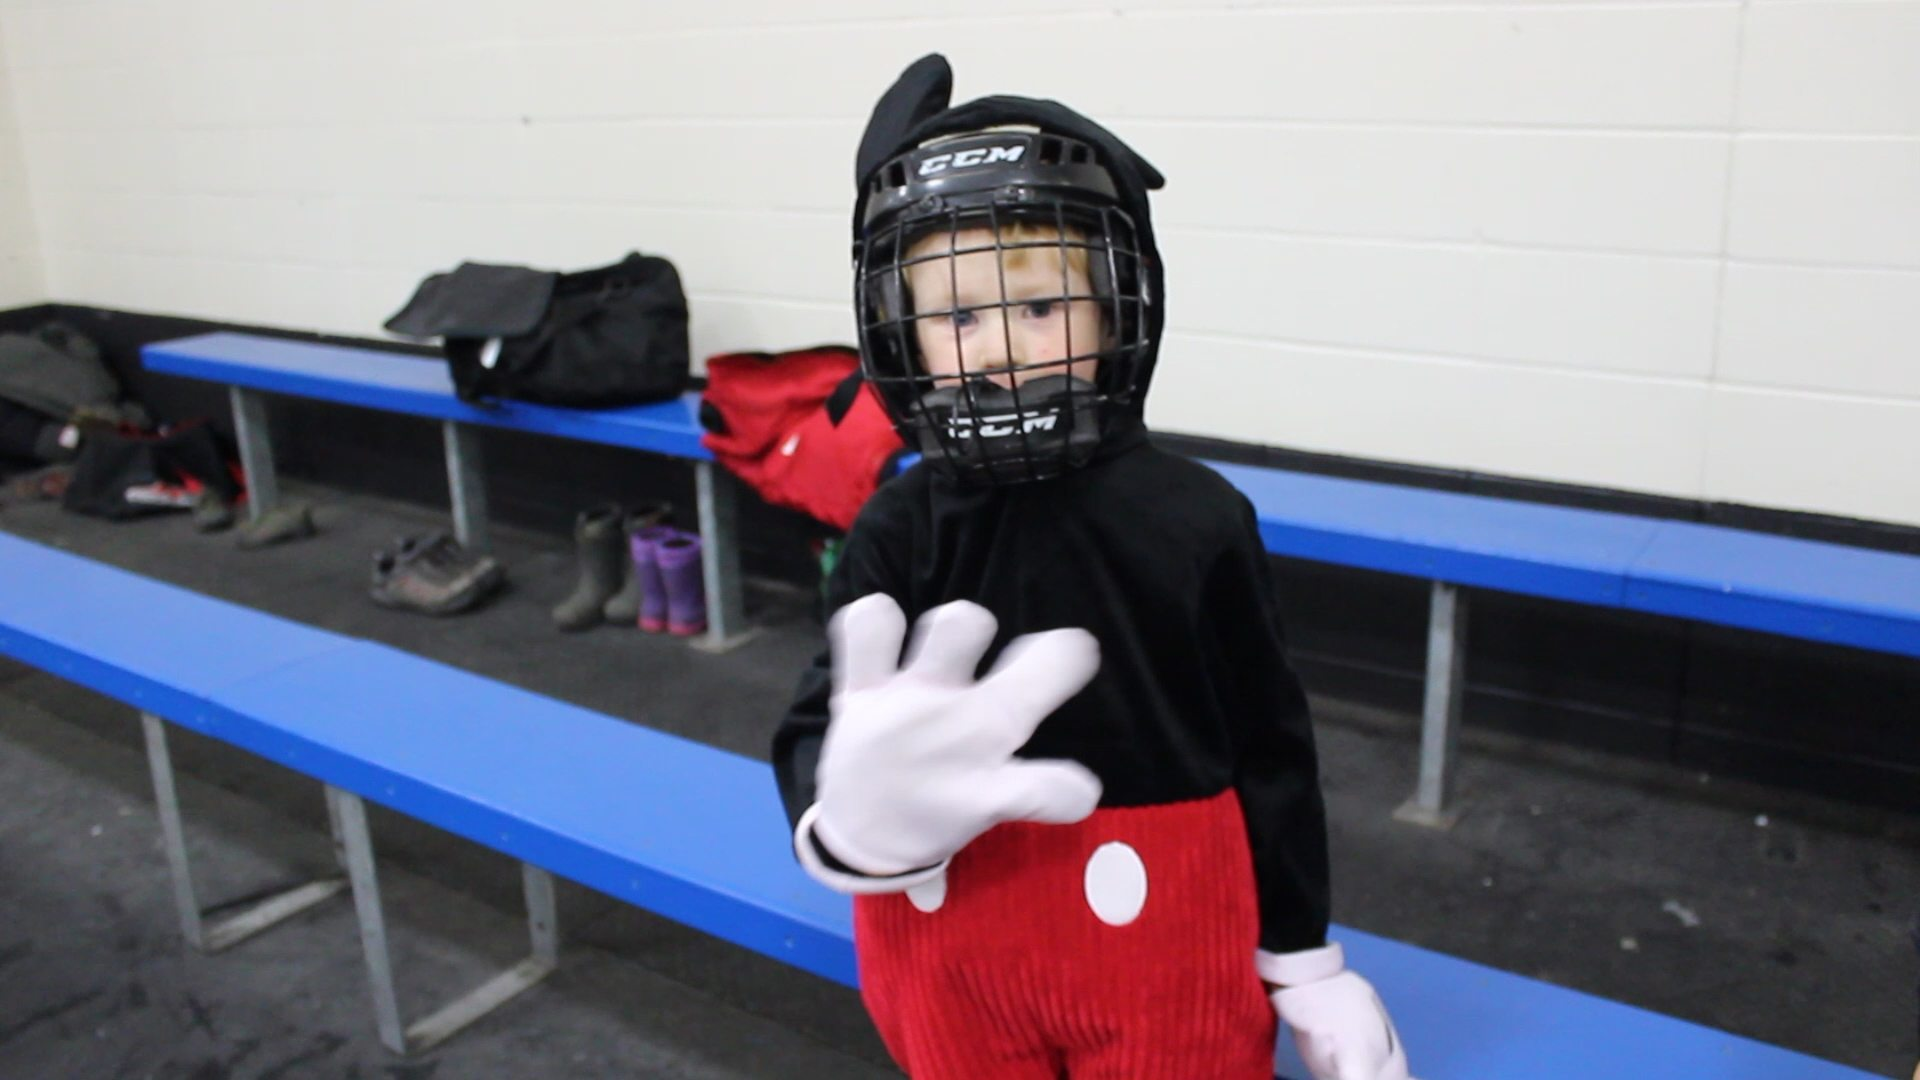 spooky skaters Saturday, october 28, 2017 2 - 4 pm line creek community center $6, free with costume come out to line creek during public skating on october 28th for our annual spooky skate this event will also feature a costume contest, games, trunk and treat and photo booth this is great event is presented in partnership with kansas city illusion [.